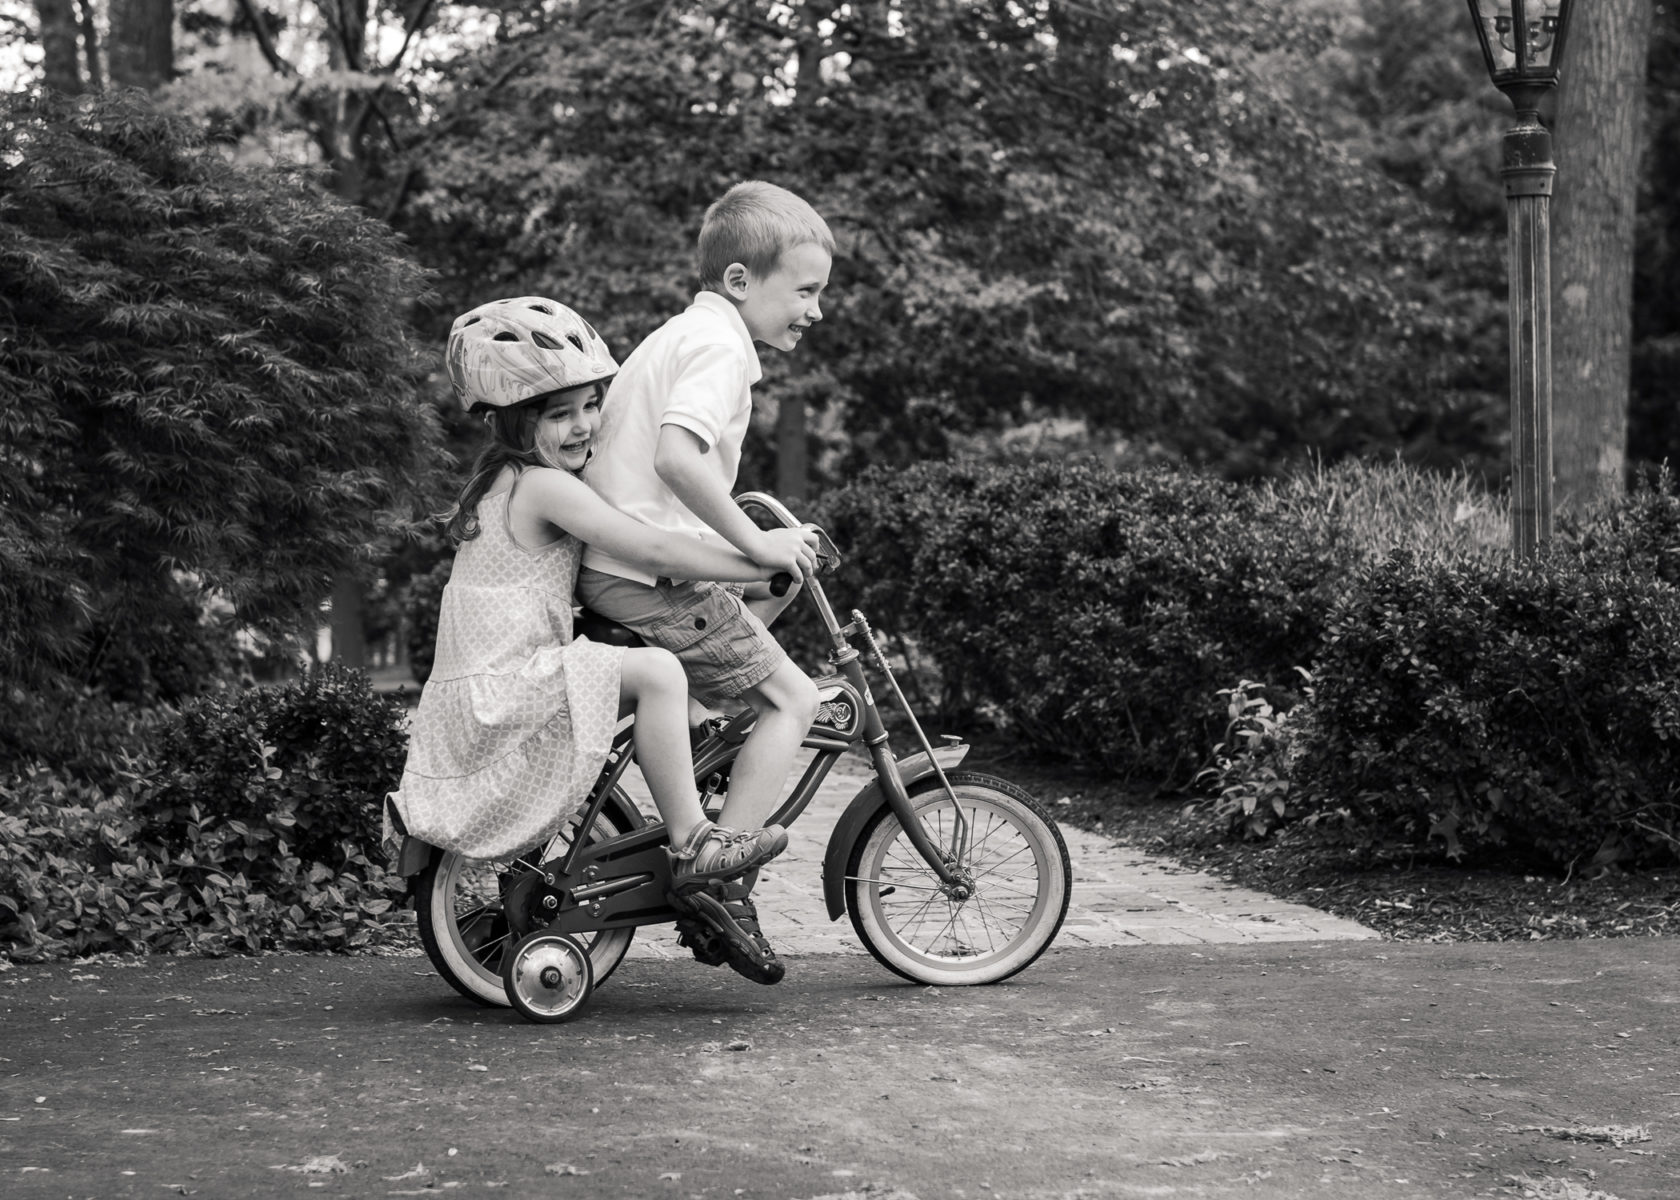 brother and sister sharing too small bicycle